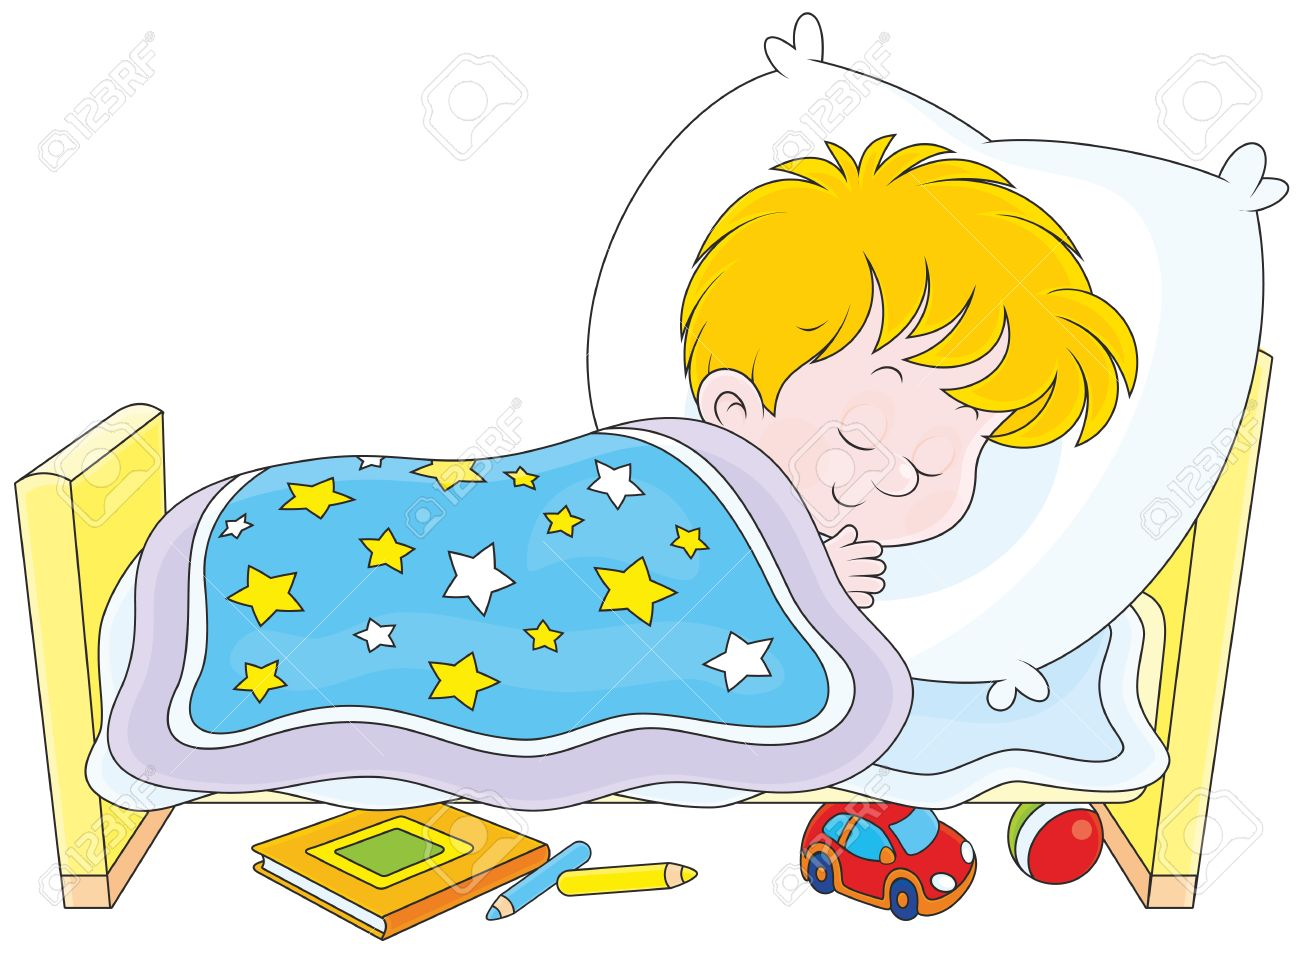 Child sleeping clipart 4 » Clipart Station